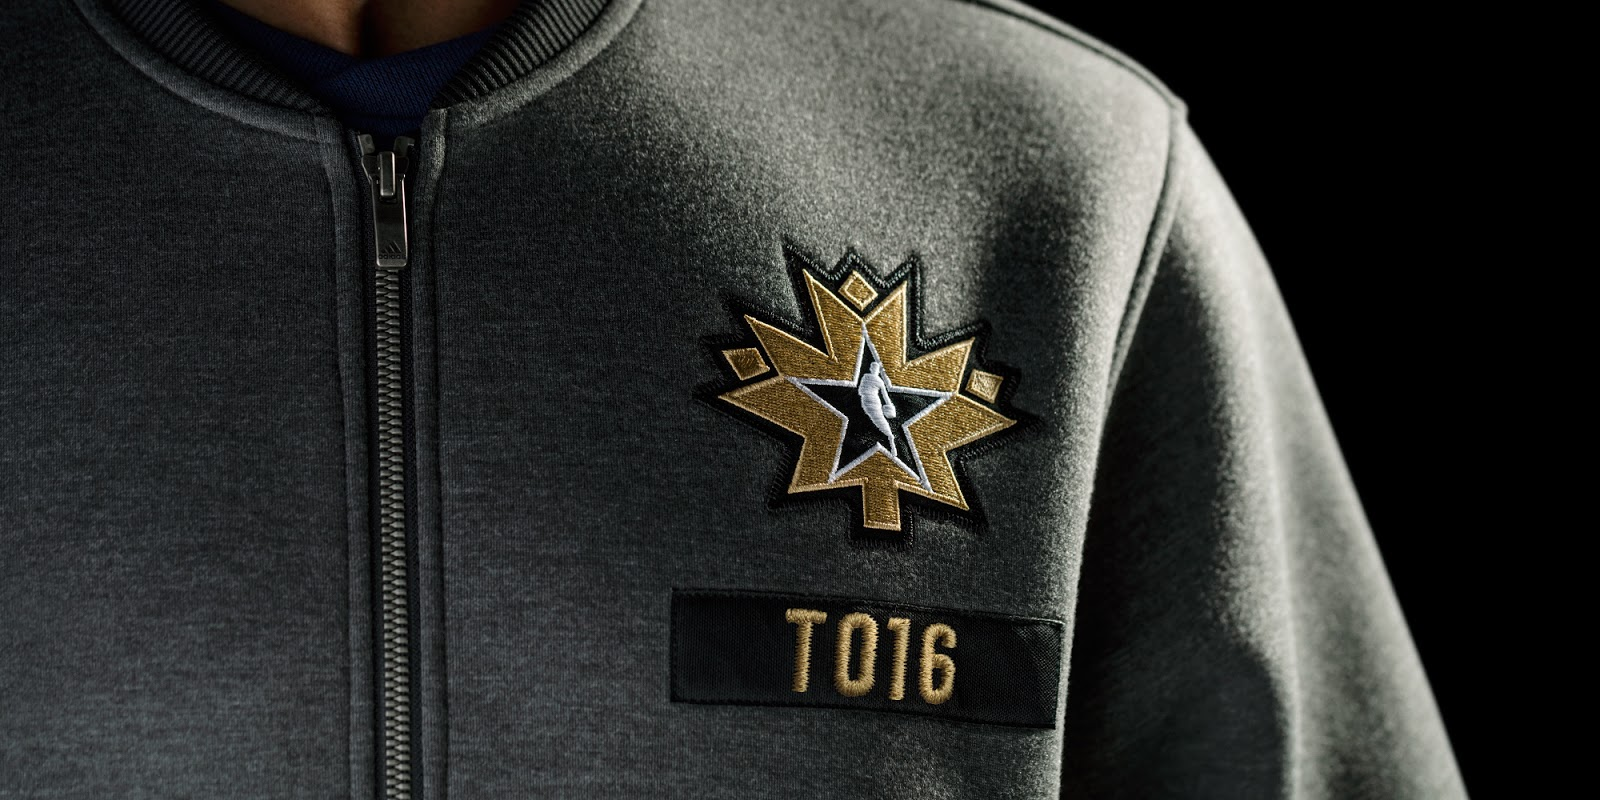 d8de8d0df Adidas and  NBA unveiled the uniforms and apparel collection for the ...